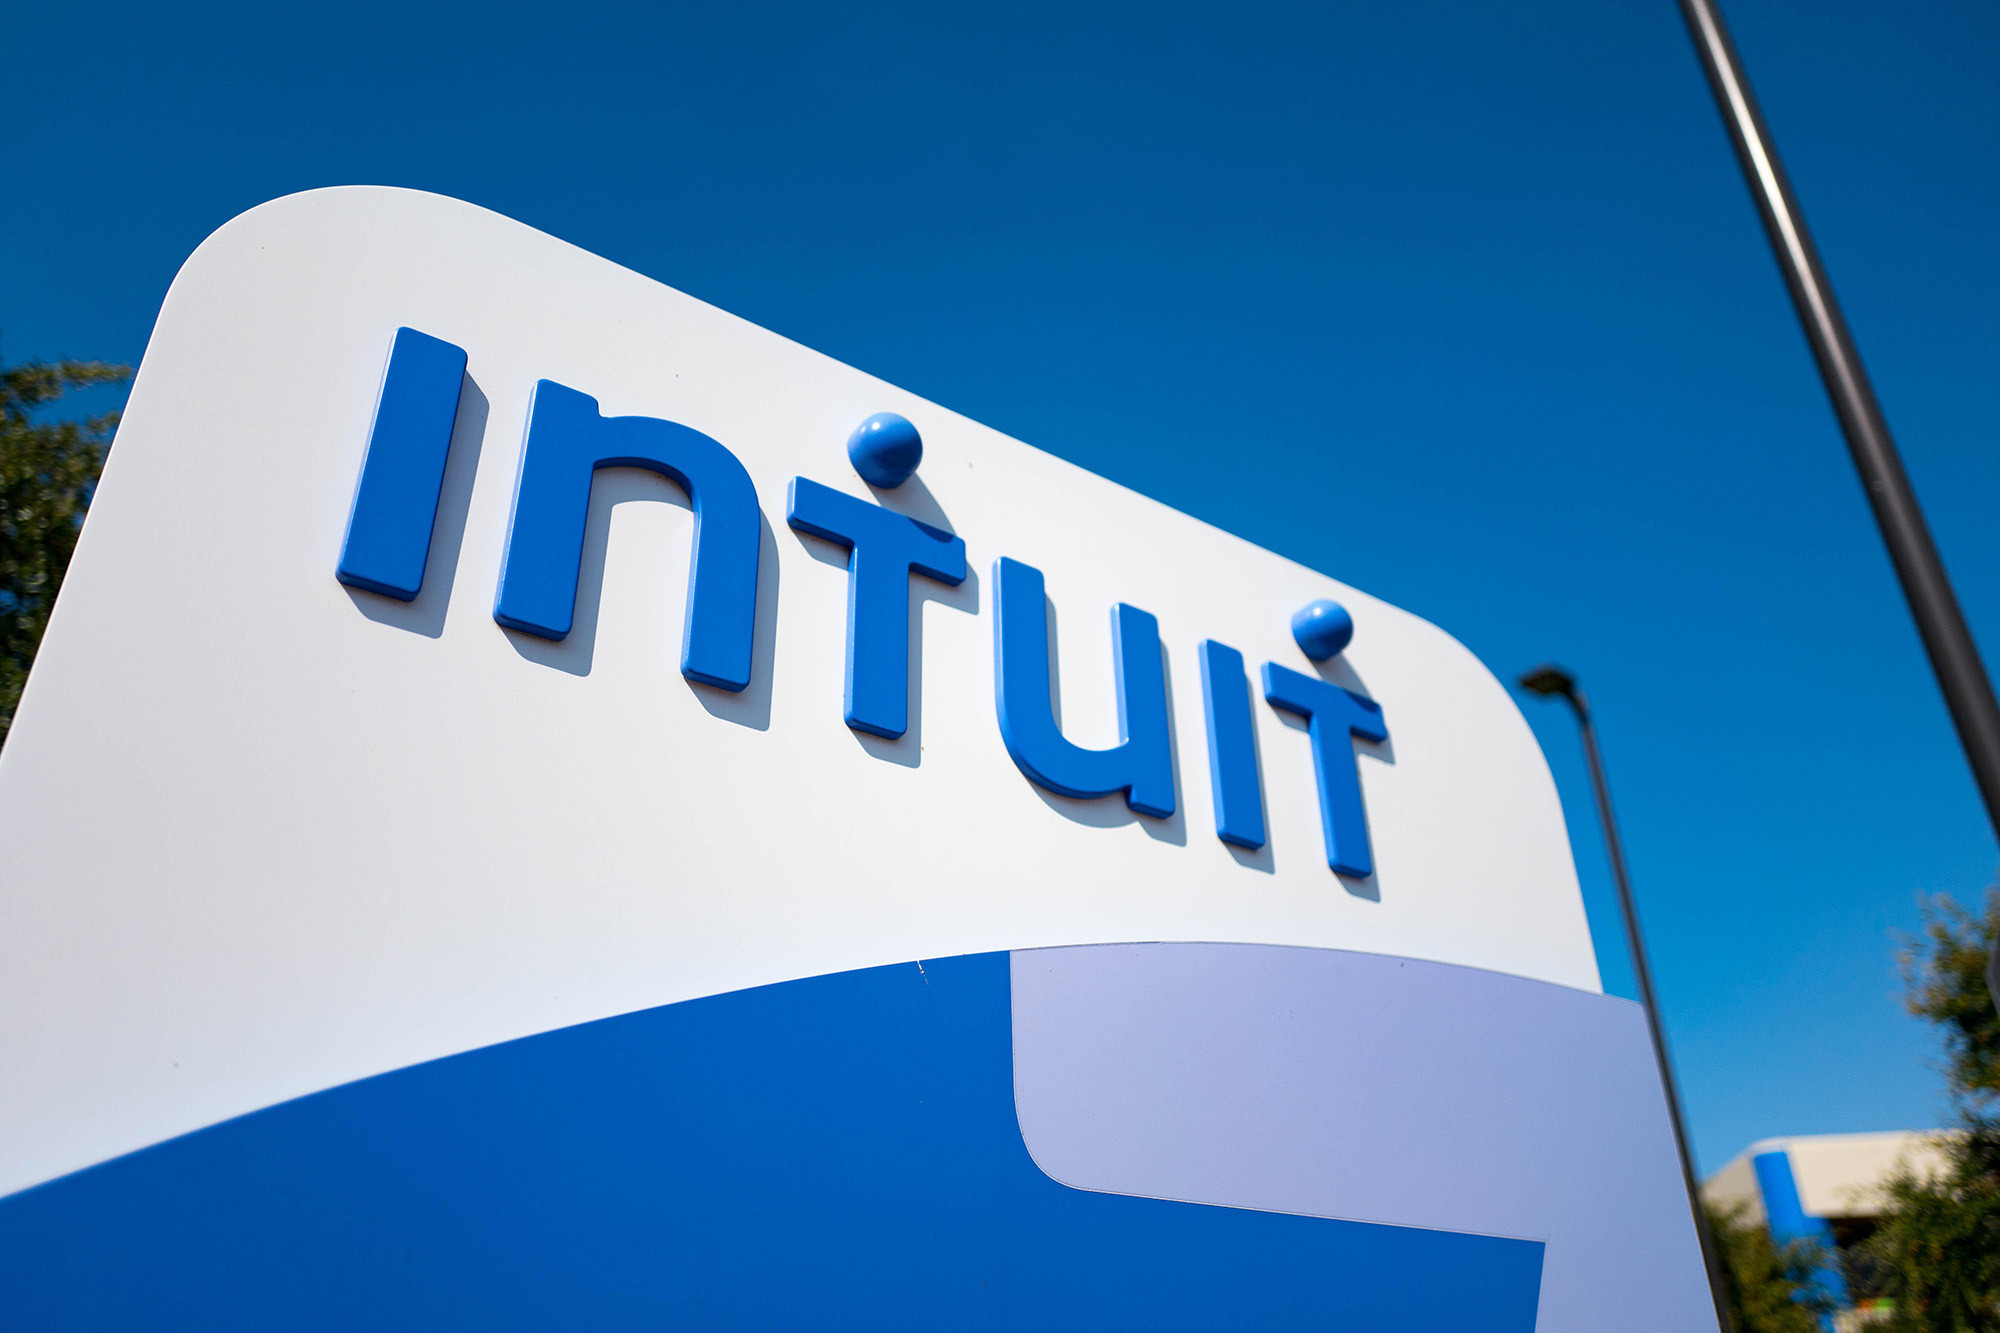 The Intuit logo